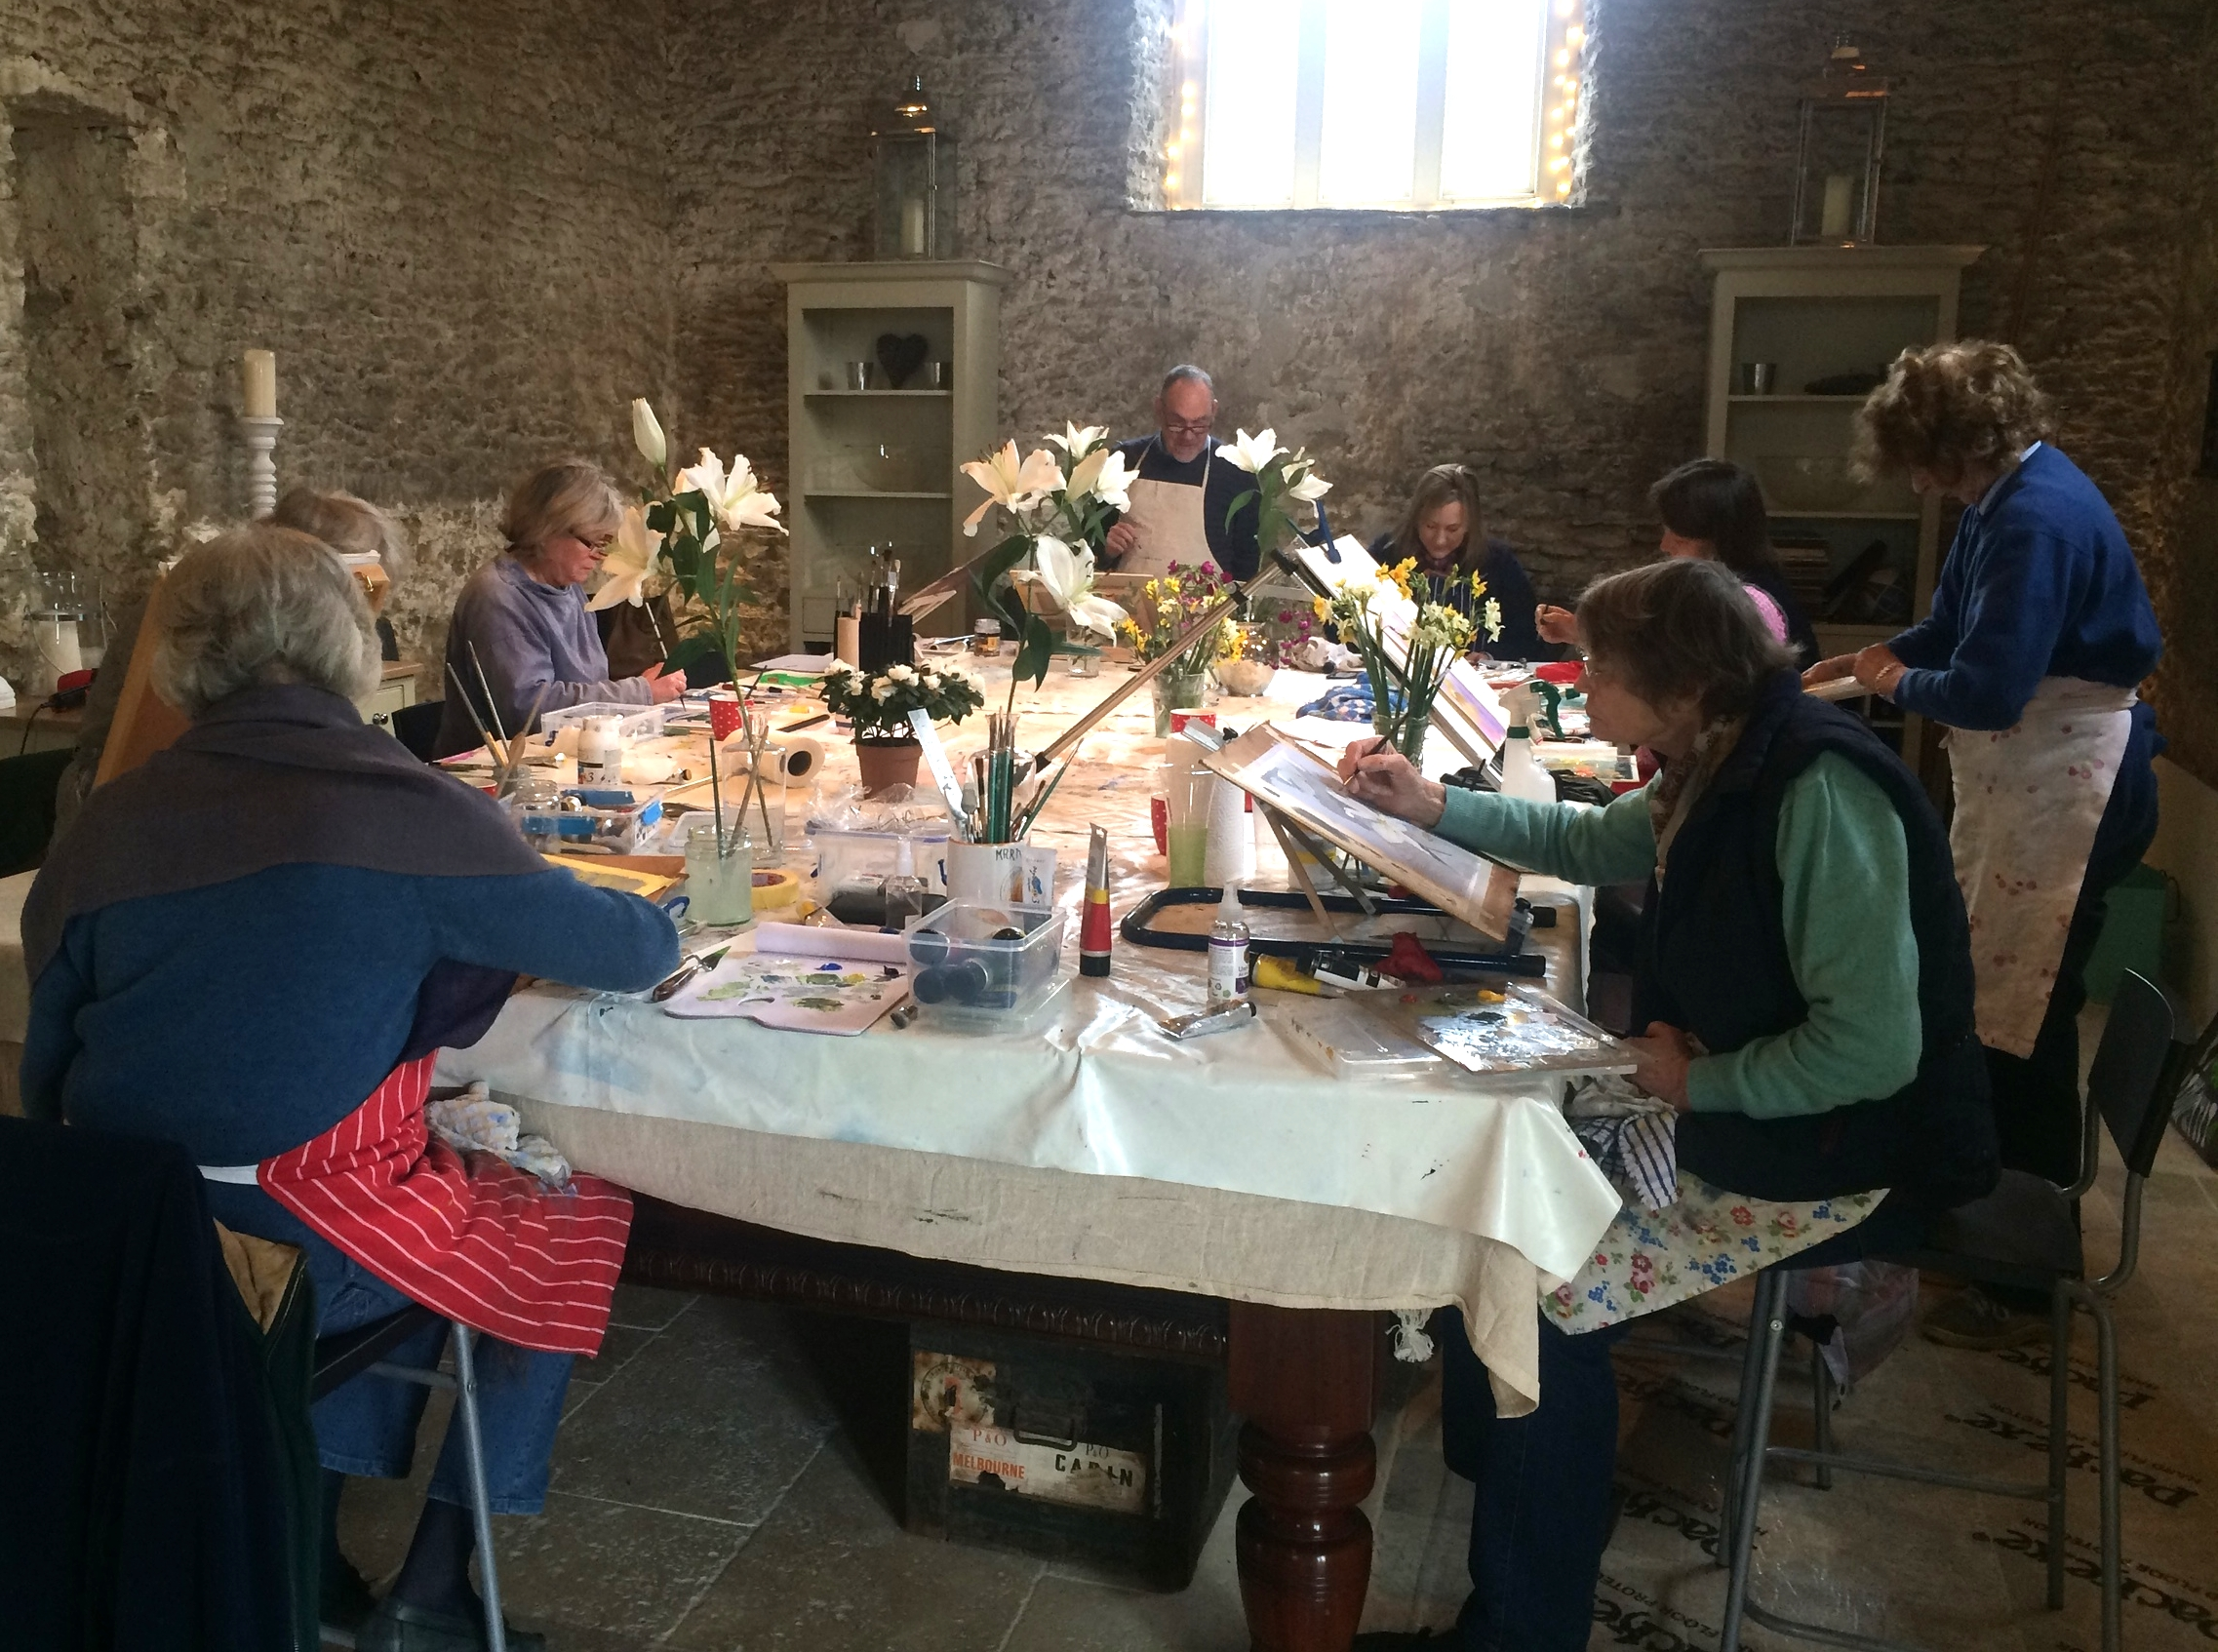 Intermediate Acrylic Workshop in Stourton Caundle